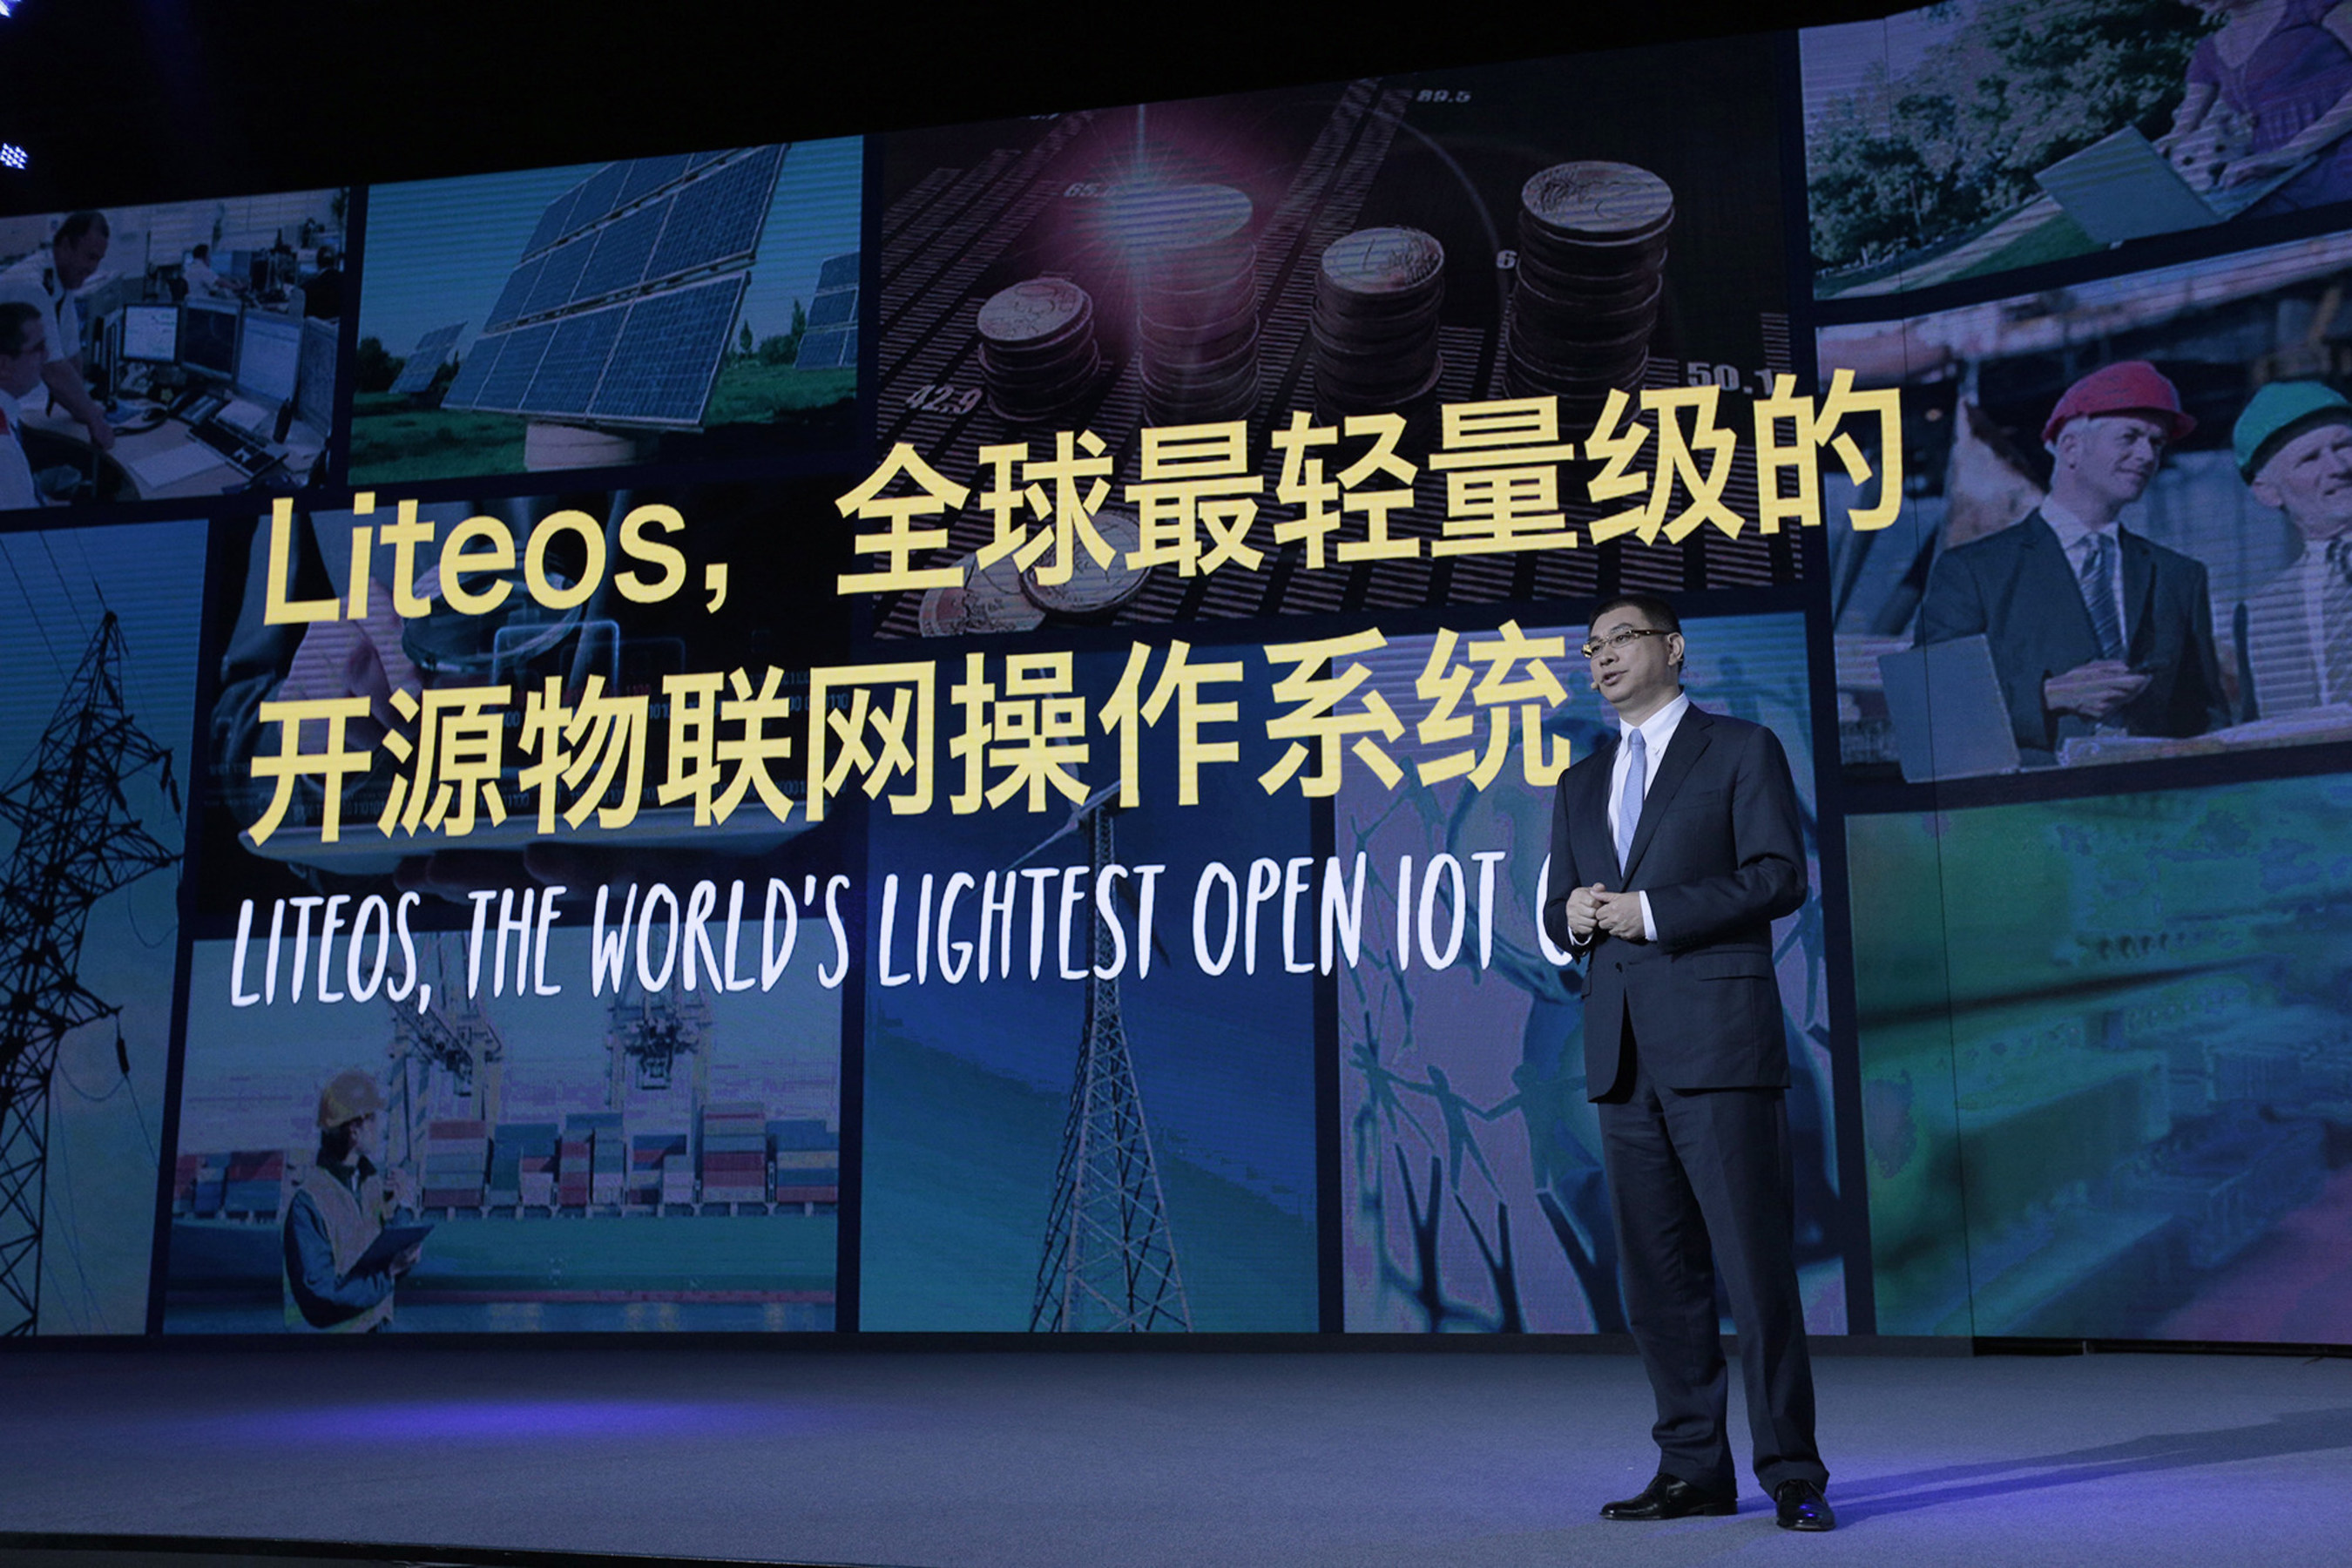 Huawei's Agile Network 3.0 Architecture Launched at Huawei Network Congress 2015